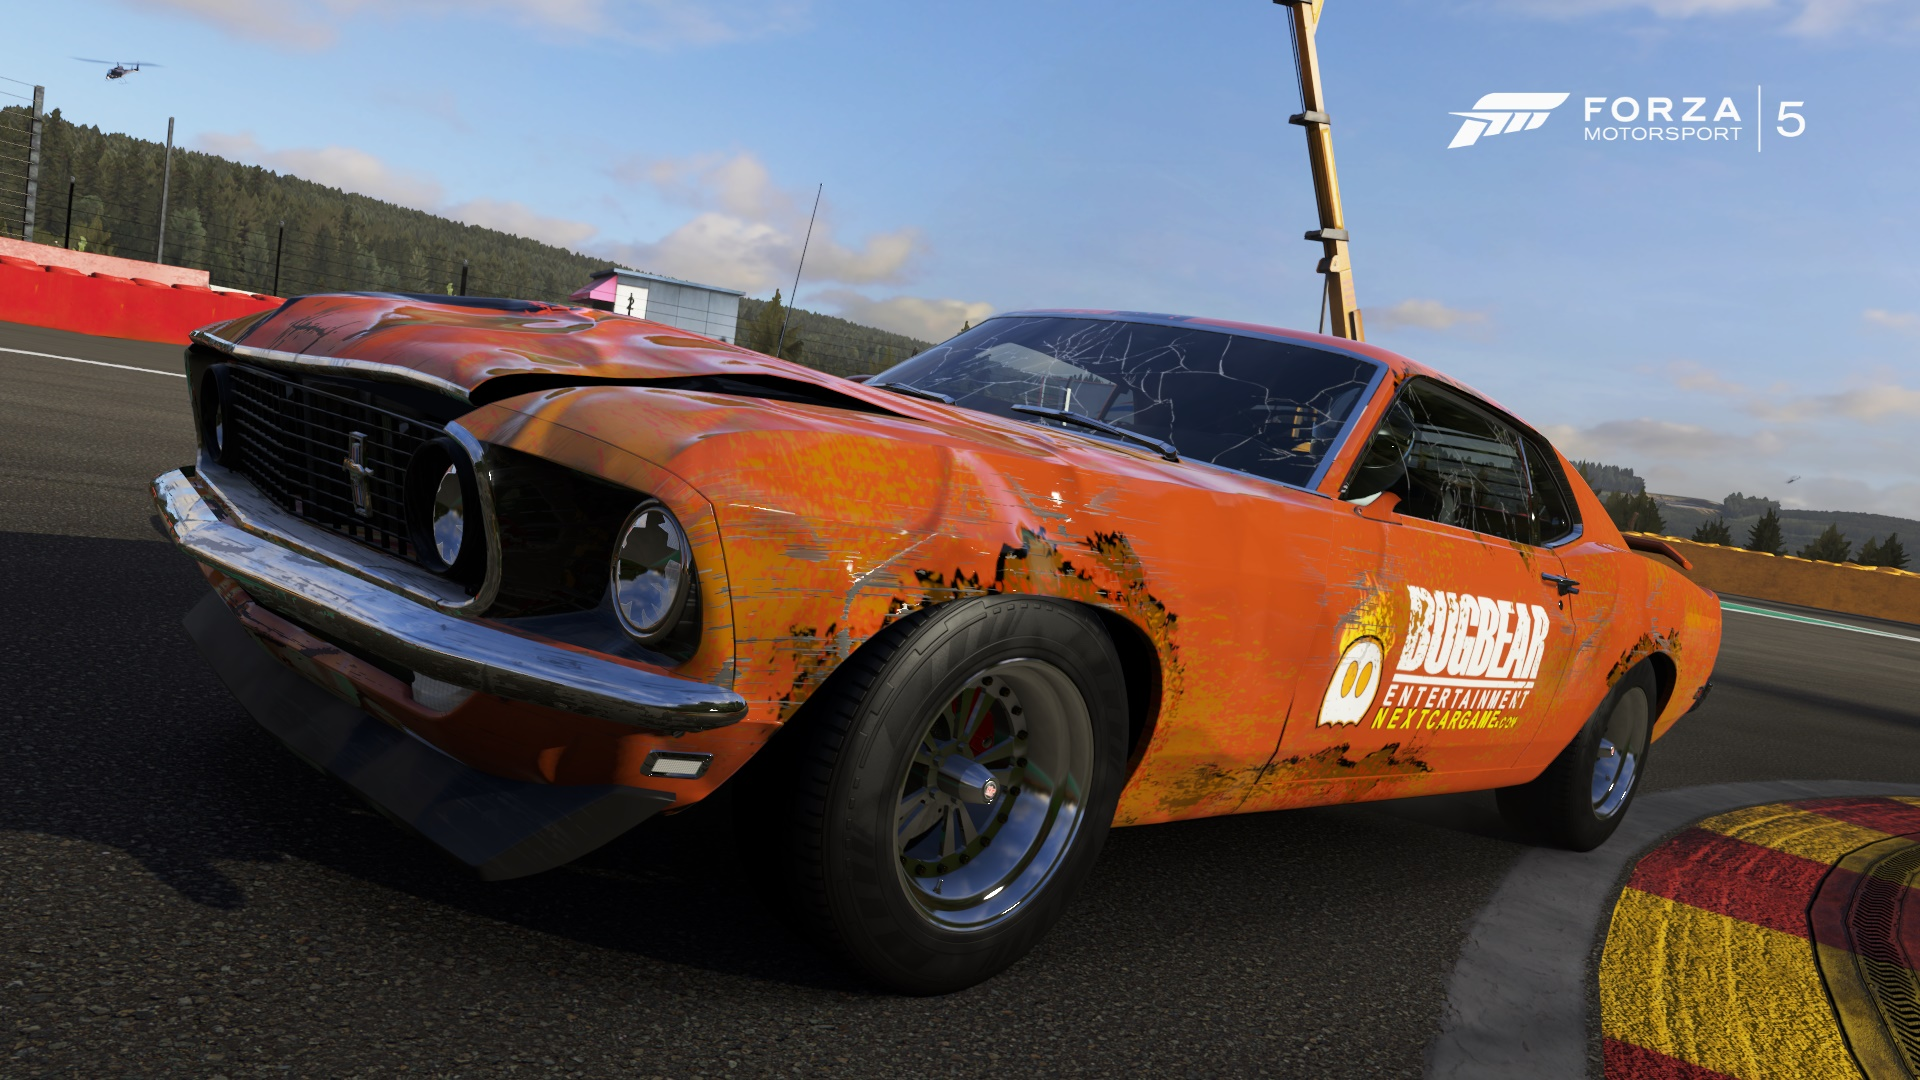 Bugbear 1 Next Car Game by Usmovers02 on DeviantArt